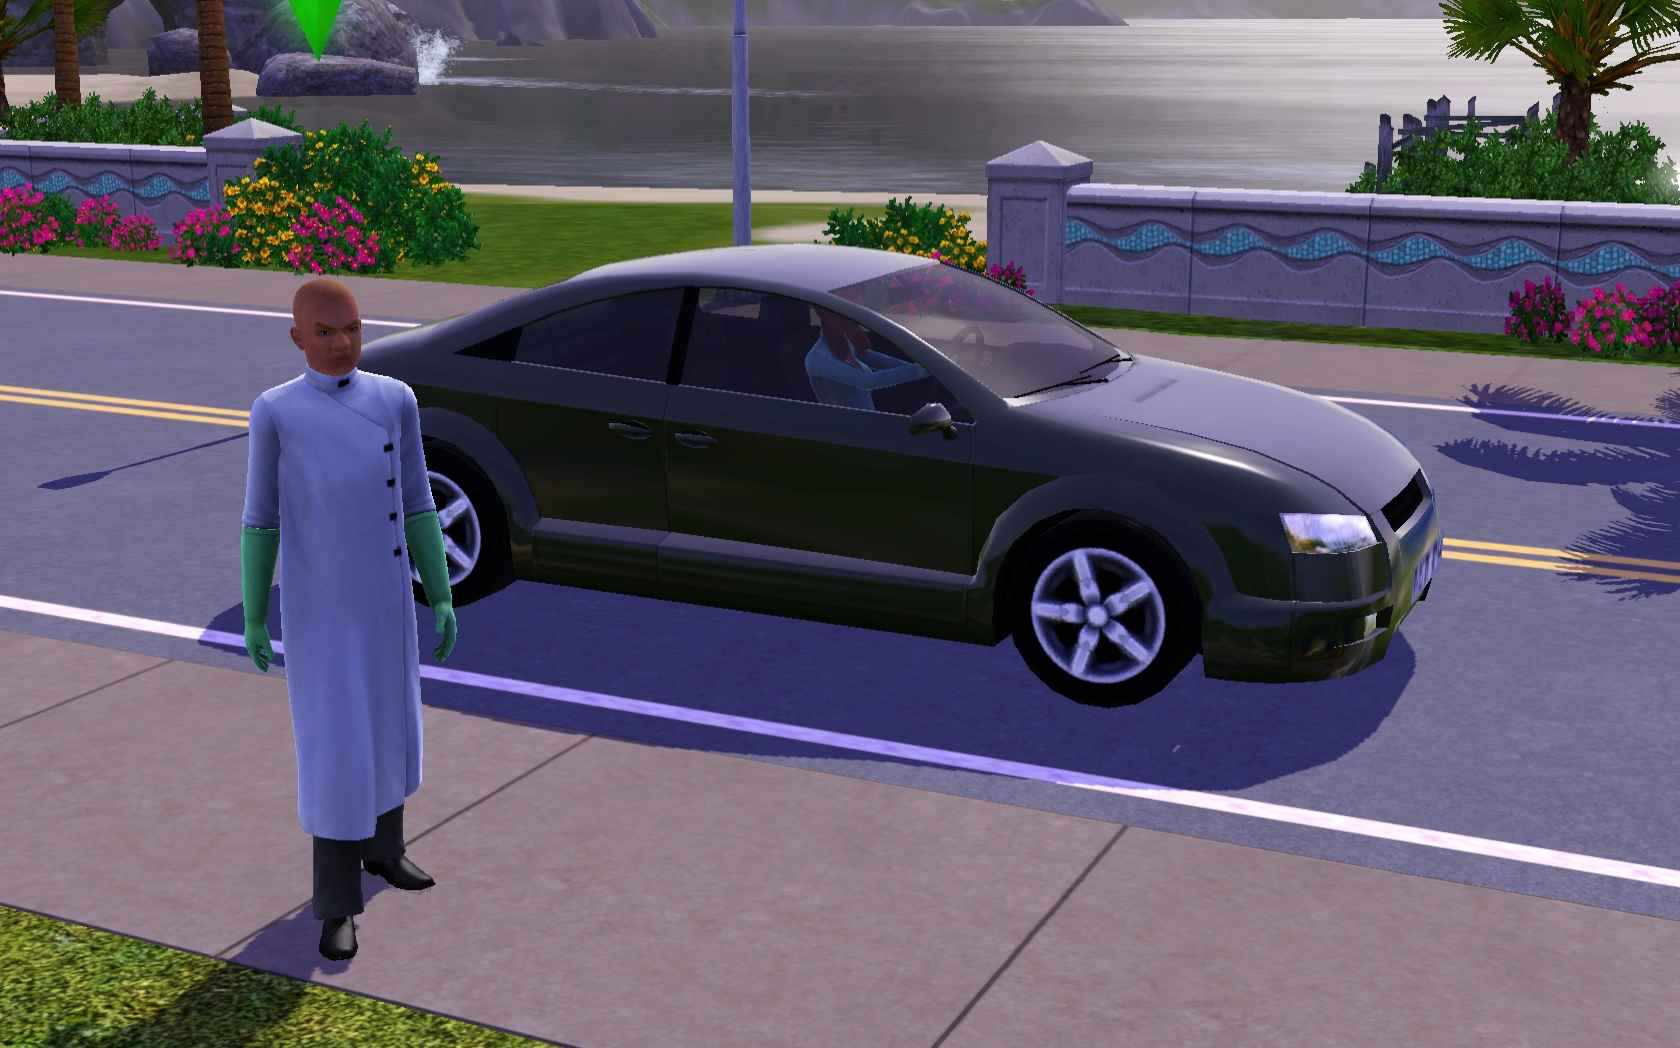 The Level 10 Doctor Uniform In Sims 3 For World Renowned Surgeon Shows